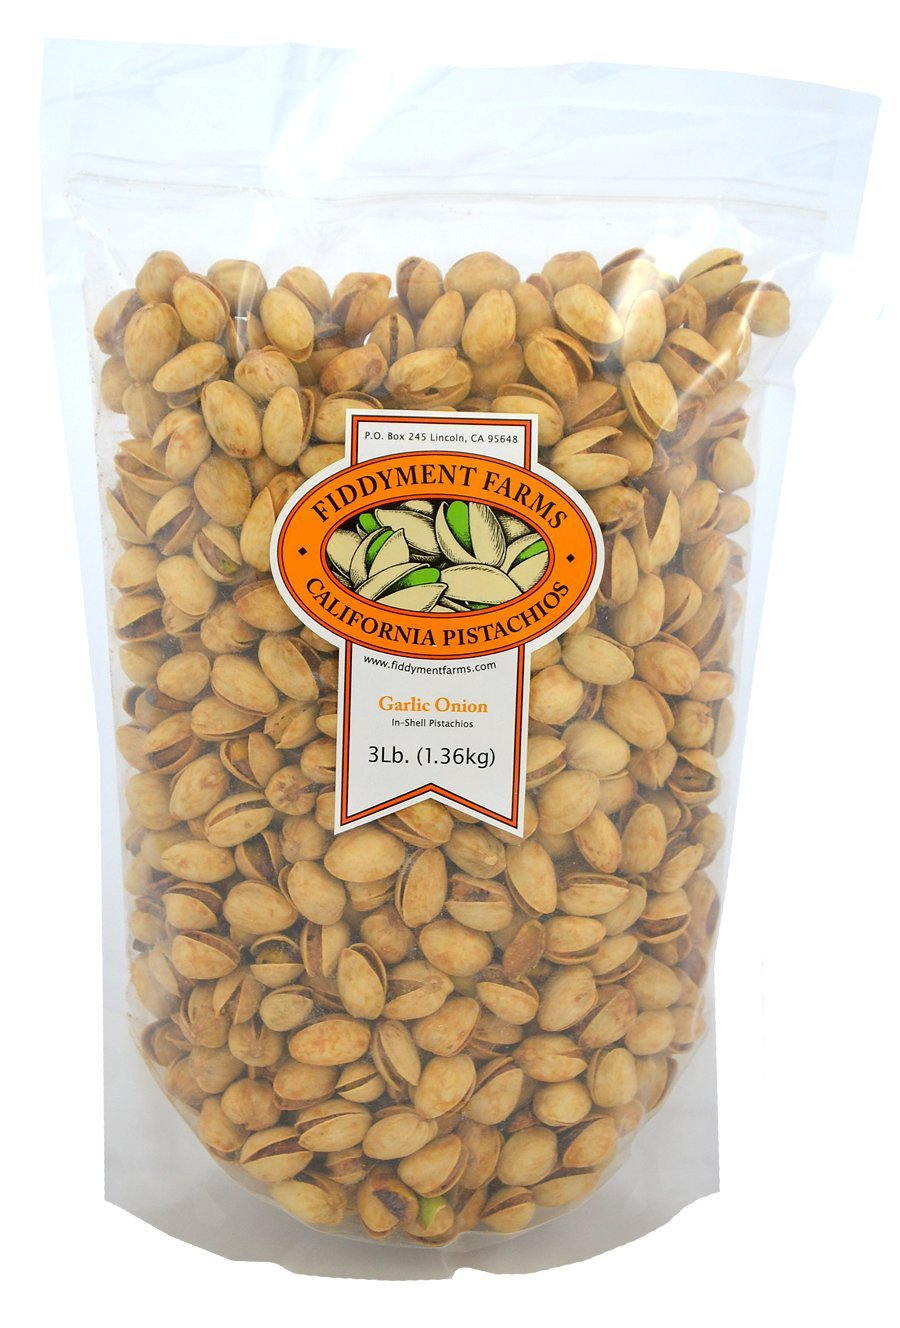 Fiddyment Farms 3lb Garlic Onion In-shell Pistachios